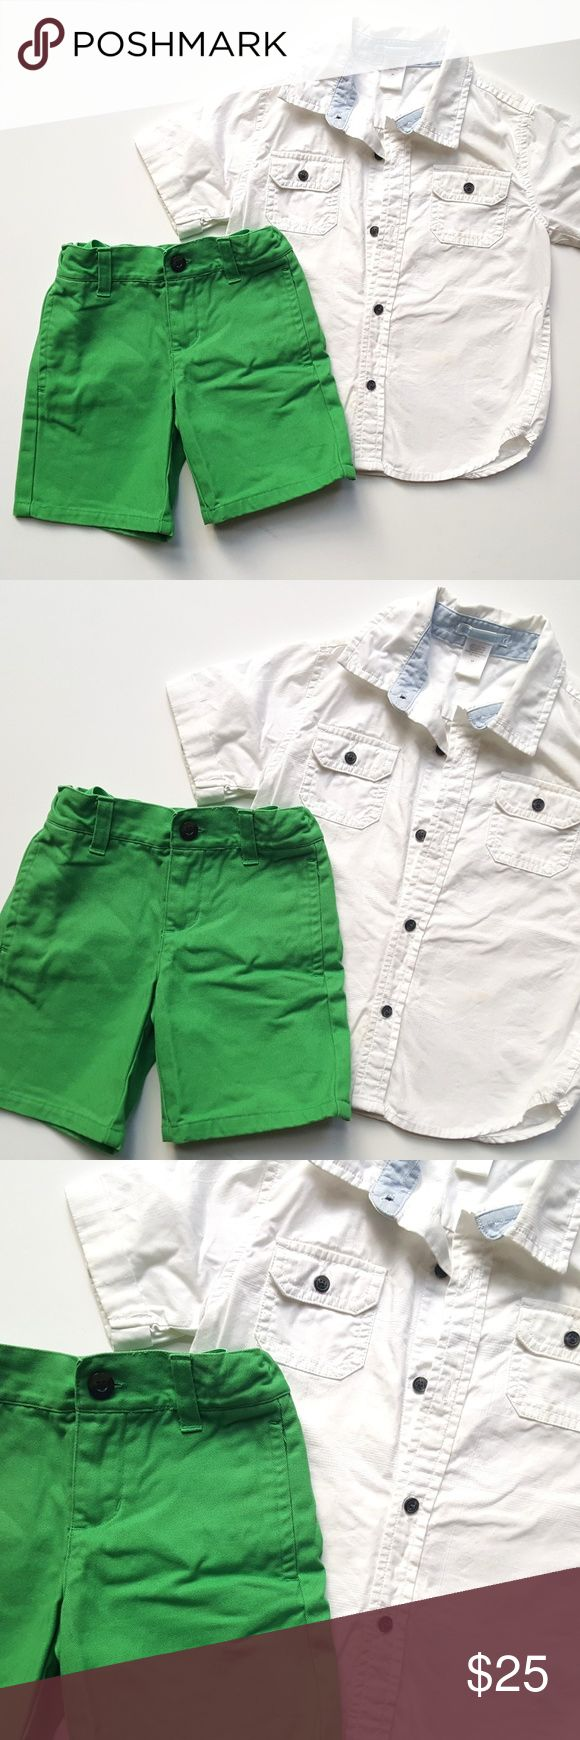 Janie and Jack Classic Red Bicycle Shirt Shorts Janie and Jack Classic Red Bicycle Shirt & Green Bar Harbor Breeze Shorts Set  Size 2t   Condition: GUC , some light scattered spots on shirt, light fade on the shorts   My items come from a smoke-free household, we do have a kitty, so an occasional hair may occur! Janie and Jack Matching Sets